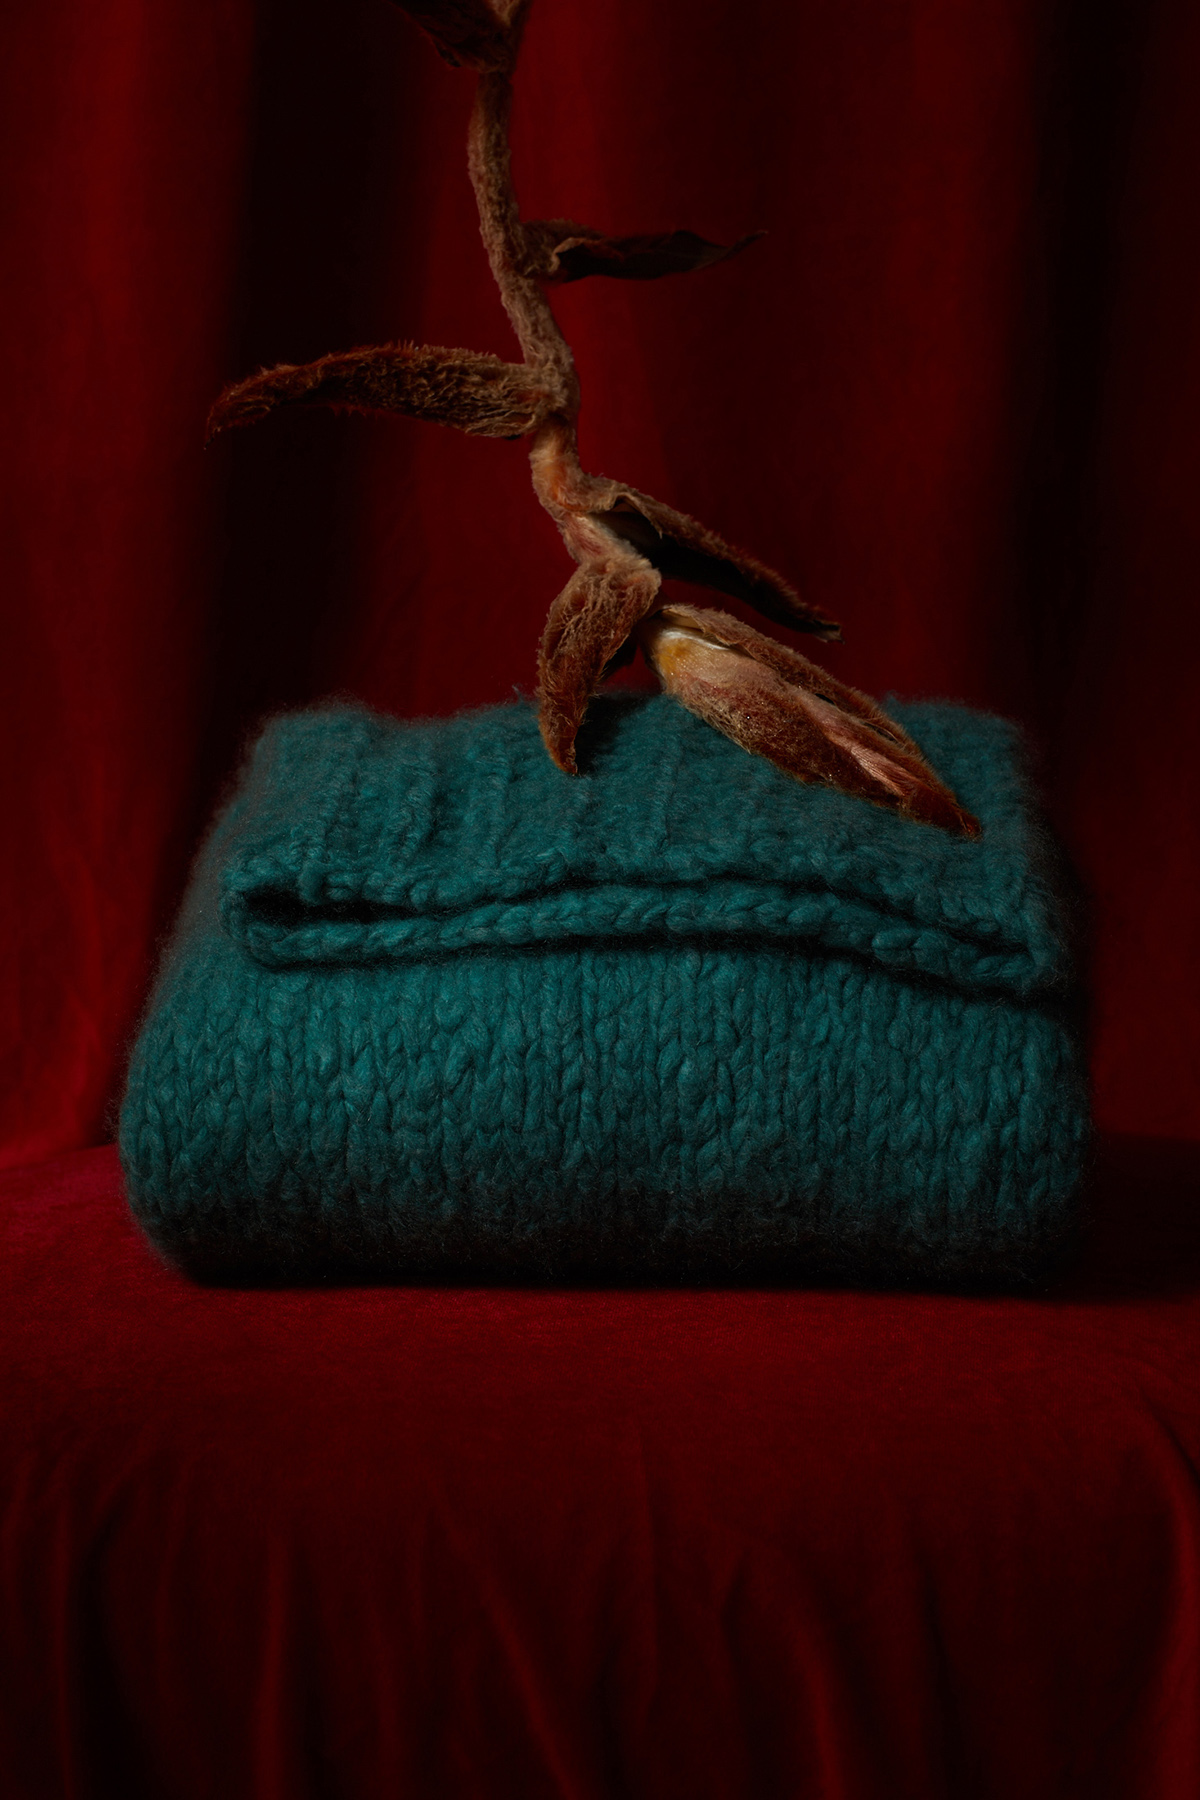 04_IAS_Teal_Sweater_StillLife_007 1.jpg